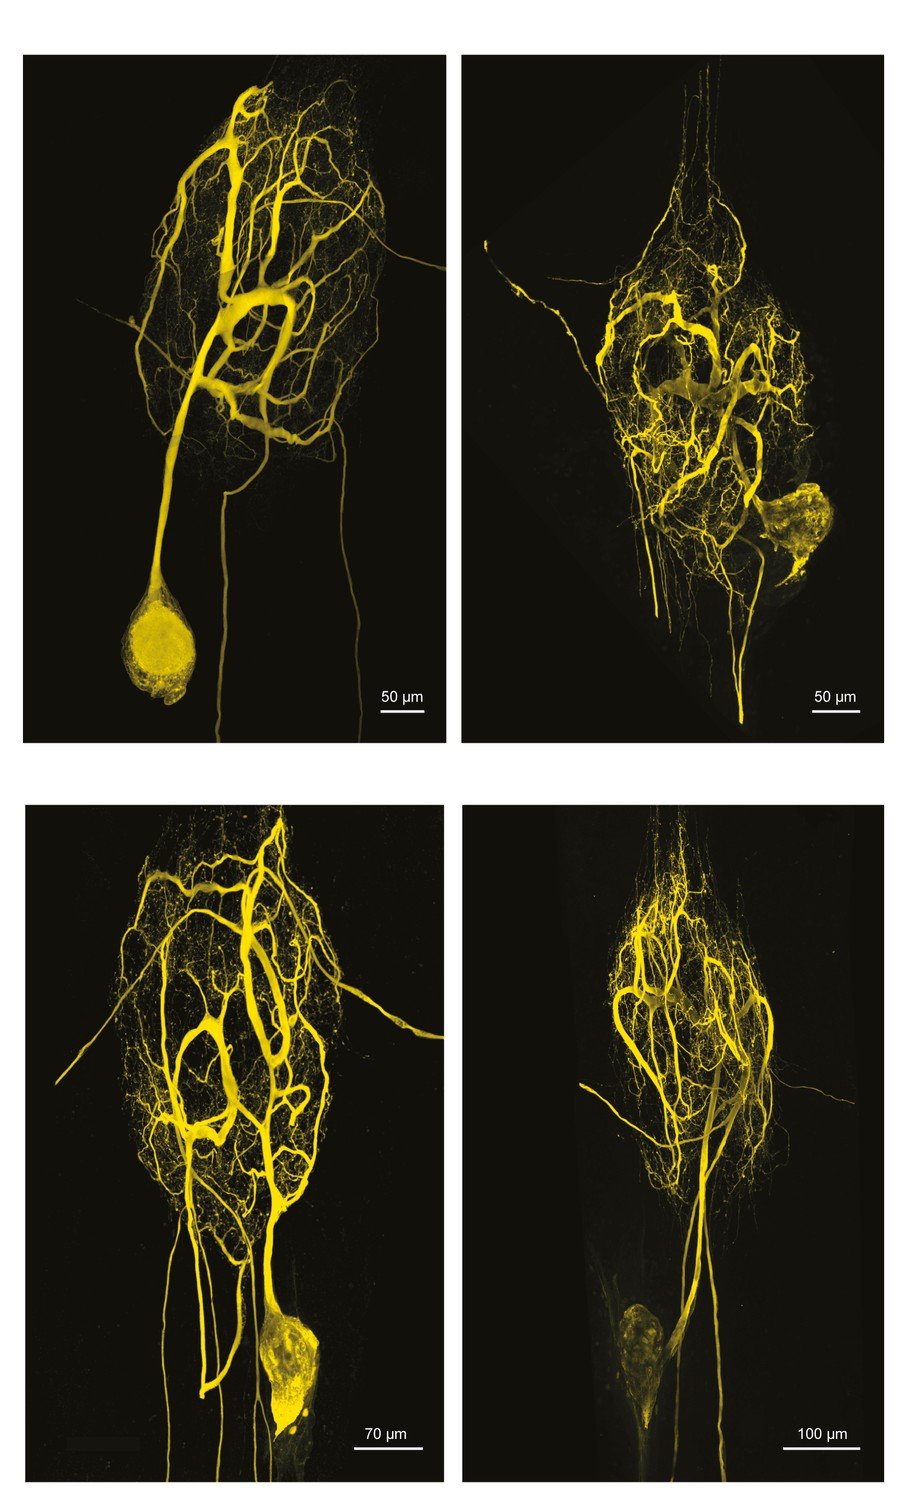 Research Identifies Complex Of Neurons >> Sloppy Morphological Tuning In Identified Neurons Of The Crustacean